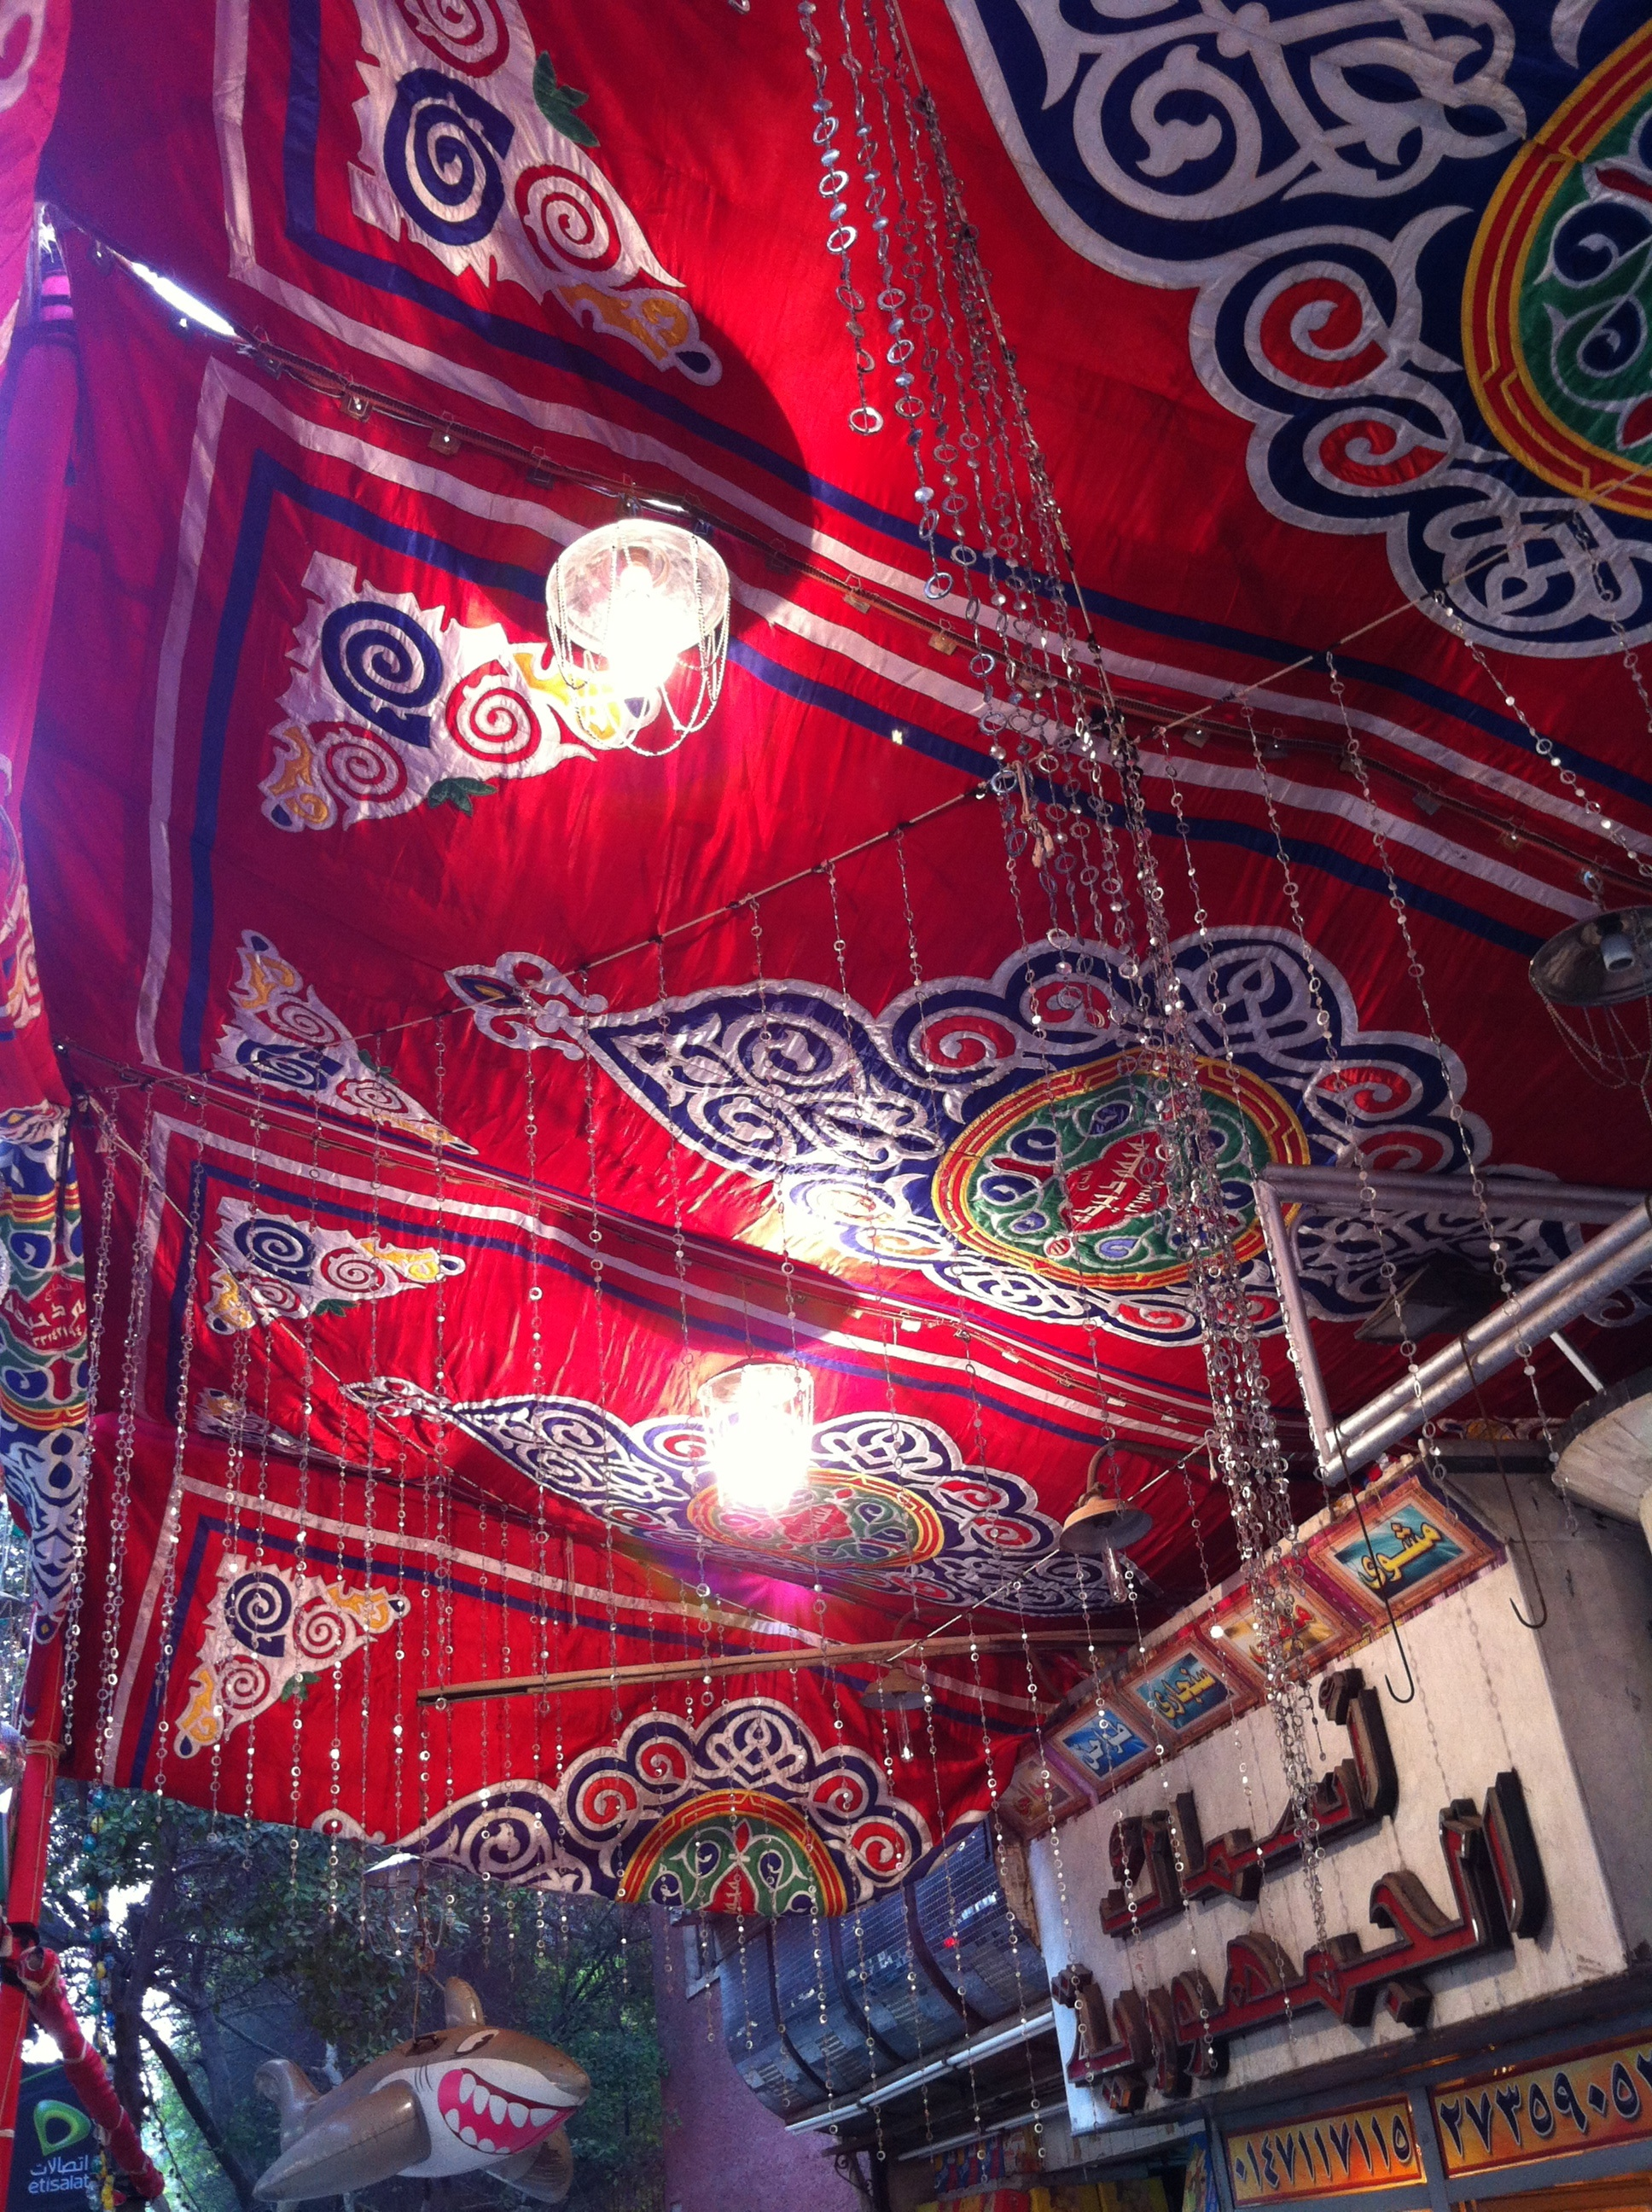 The roof the tent put up for the end of Ramadan festival of the Sacrifice